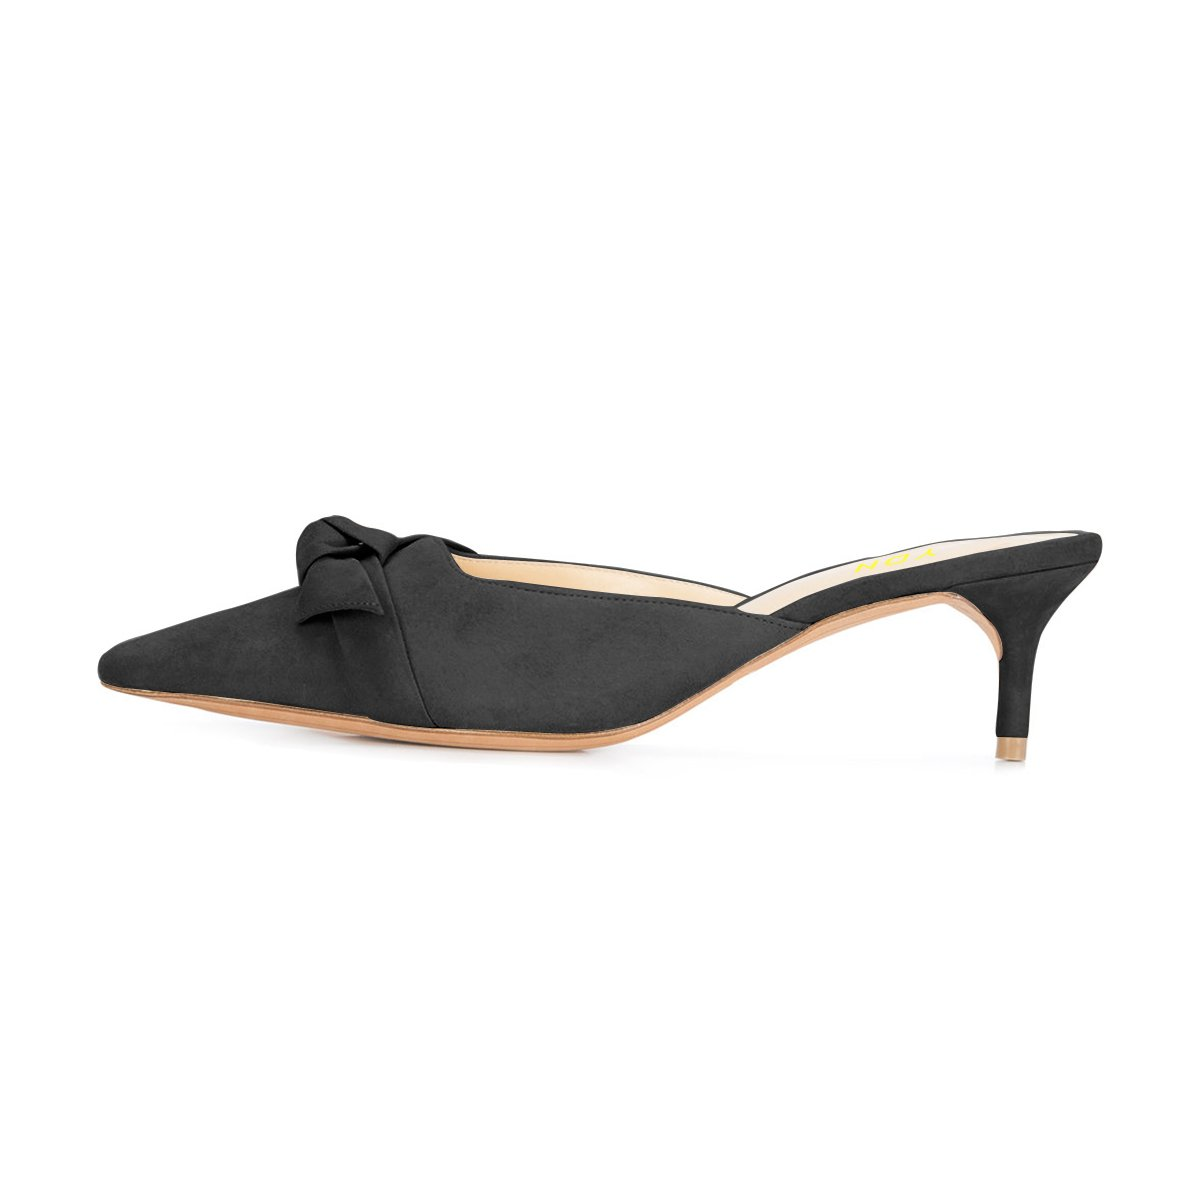 a93f266c7e8 YDN Womens Low Heels Slide Sandals Pointed Toe Kitten Mules Slip on Pumps  with Chic Bow